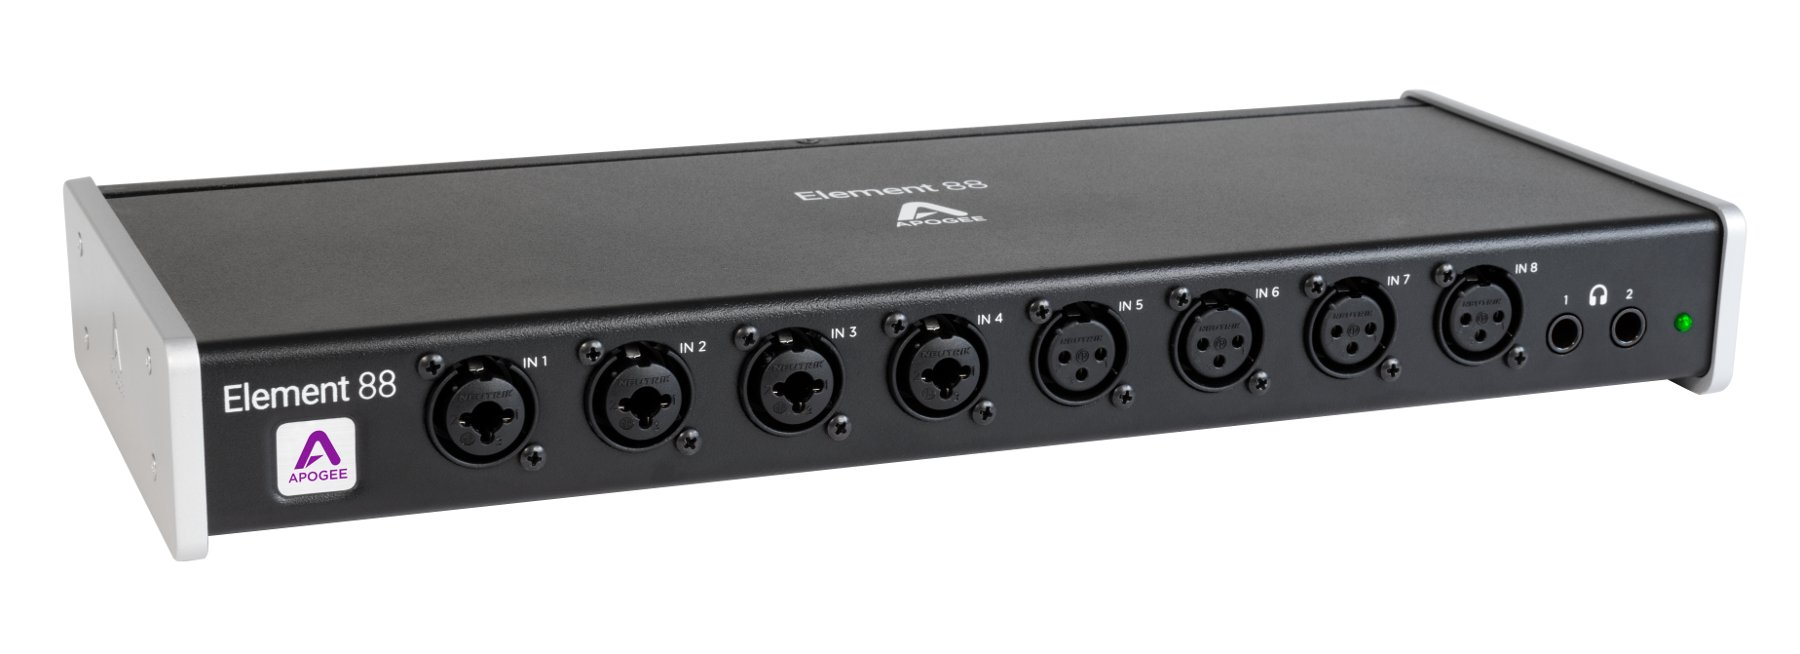 16 In/16 Out Thunderbolt Audio I/O Box for Mac